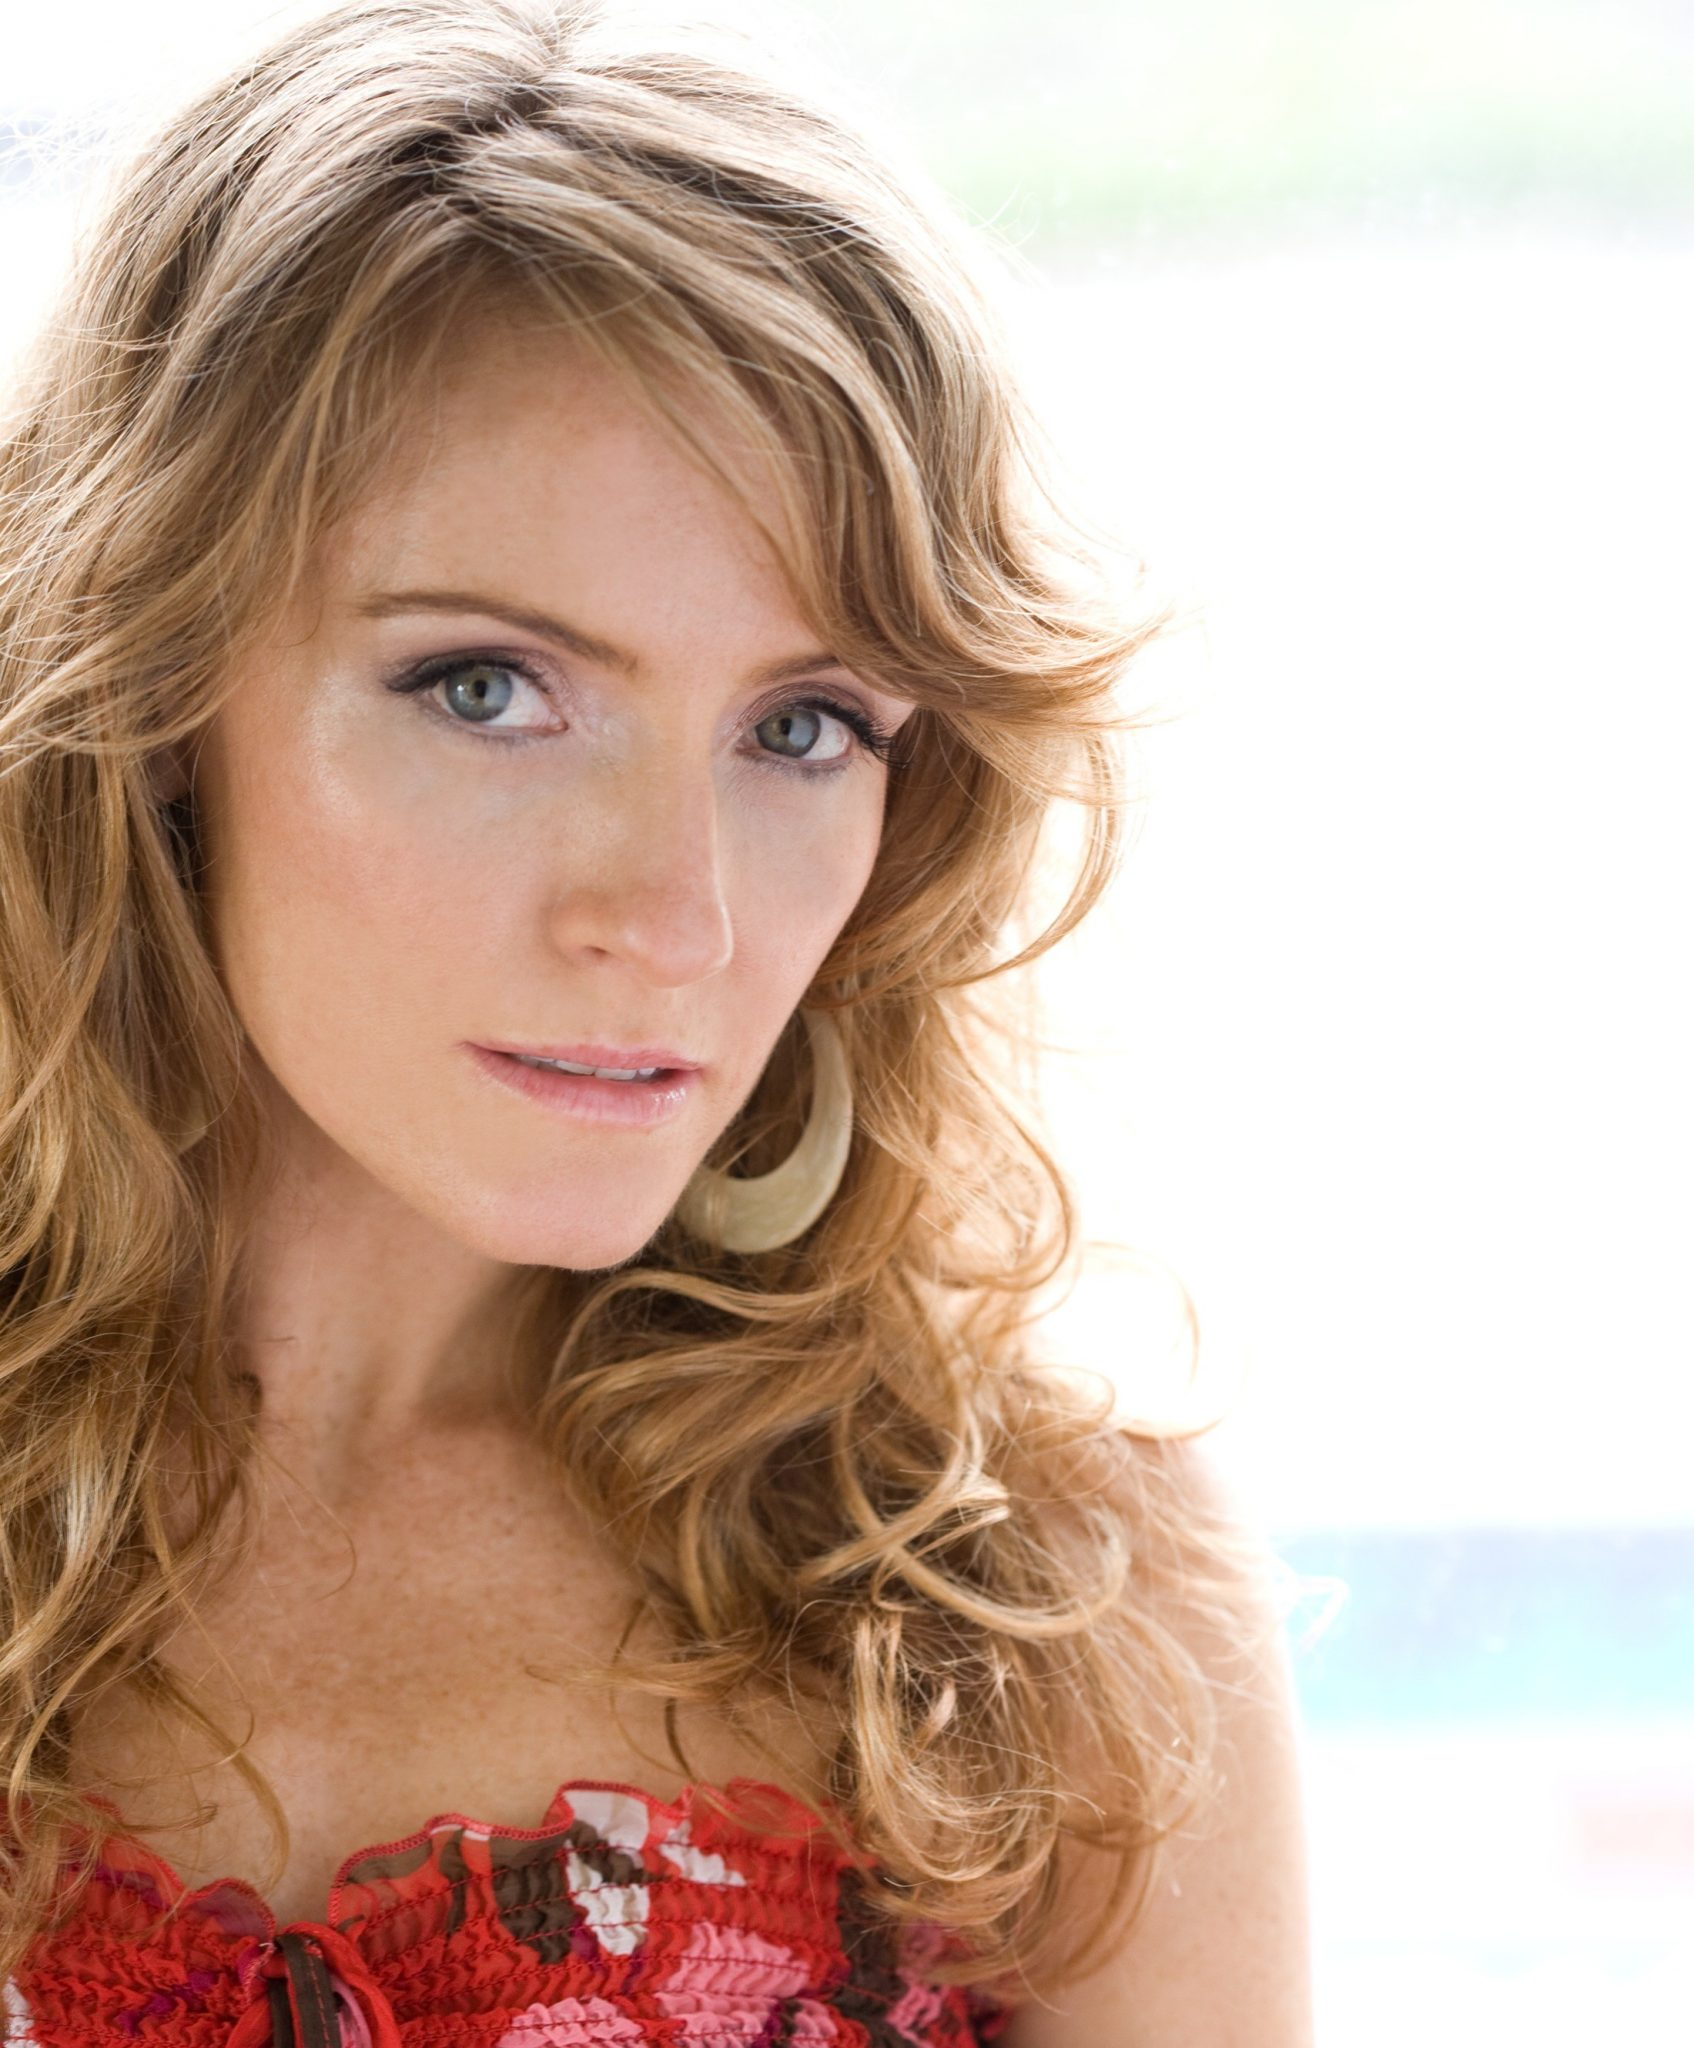 Helene Joy nudes (24 foto and video), Topless, Leaked, Boobs, butt 2017